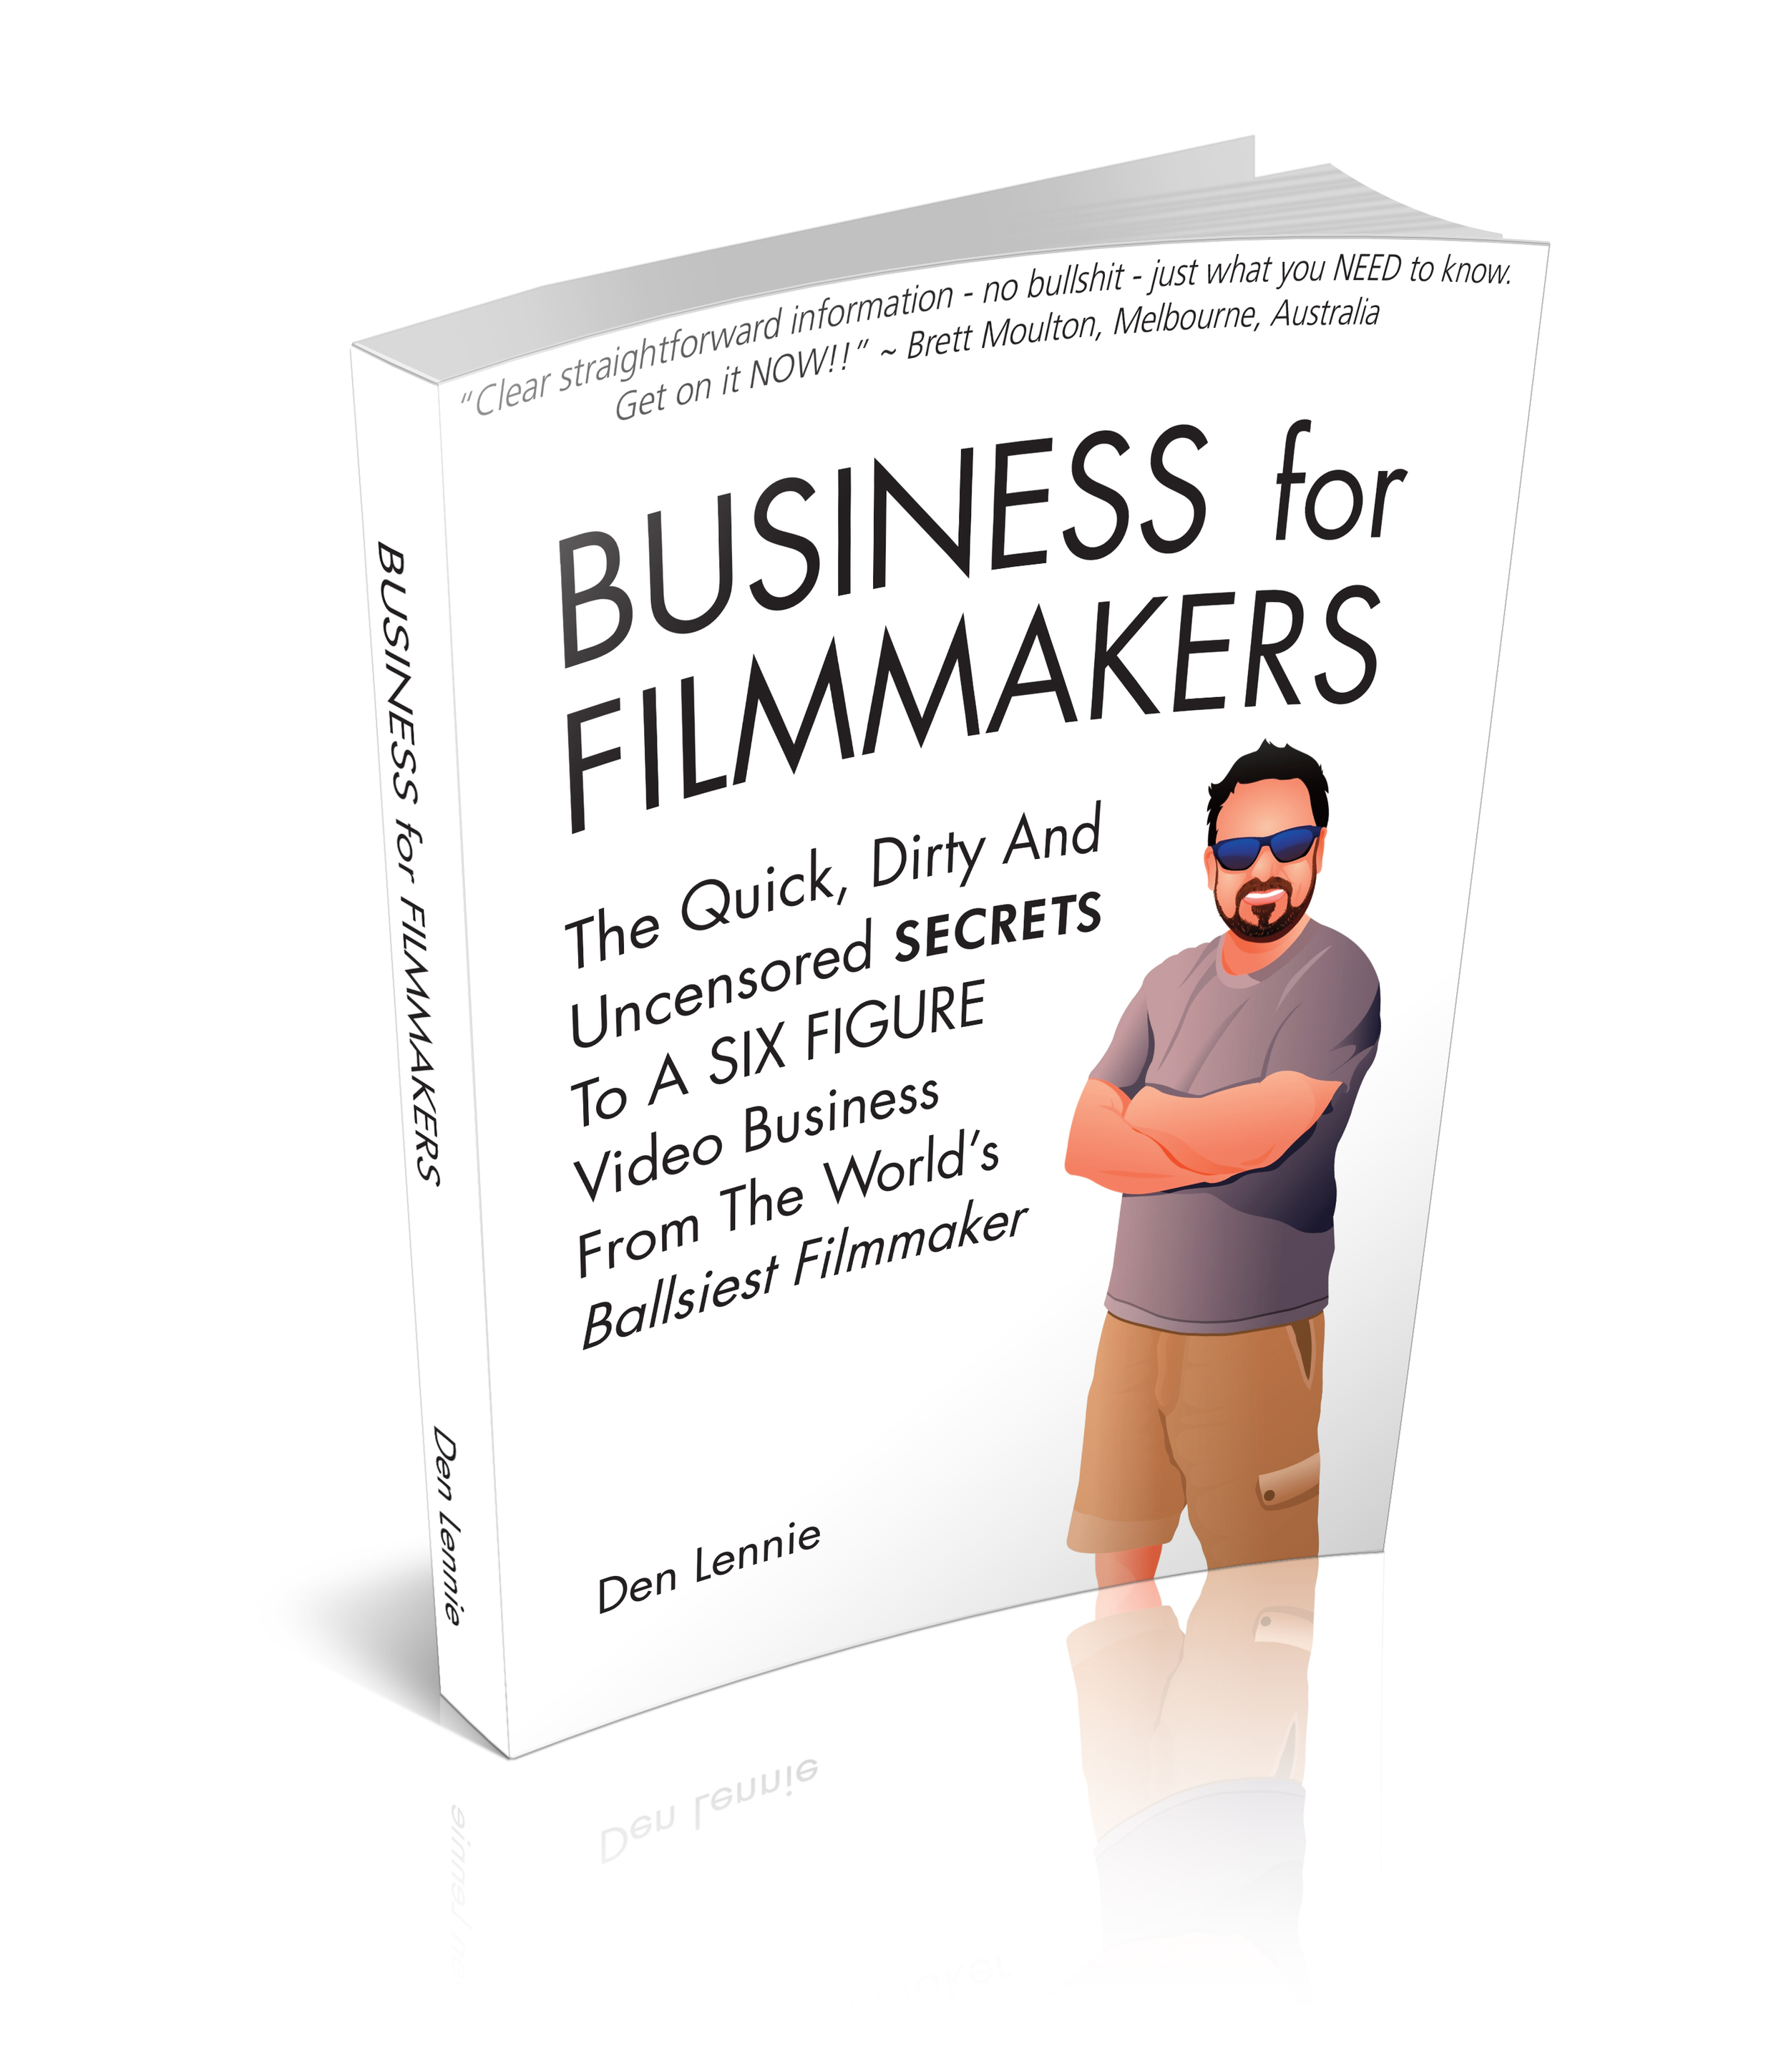 Den's Best selling book Business for Filmmakers